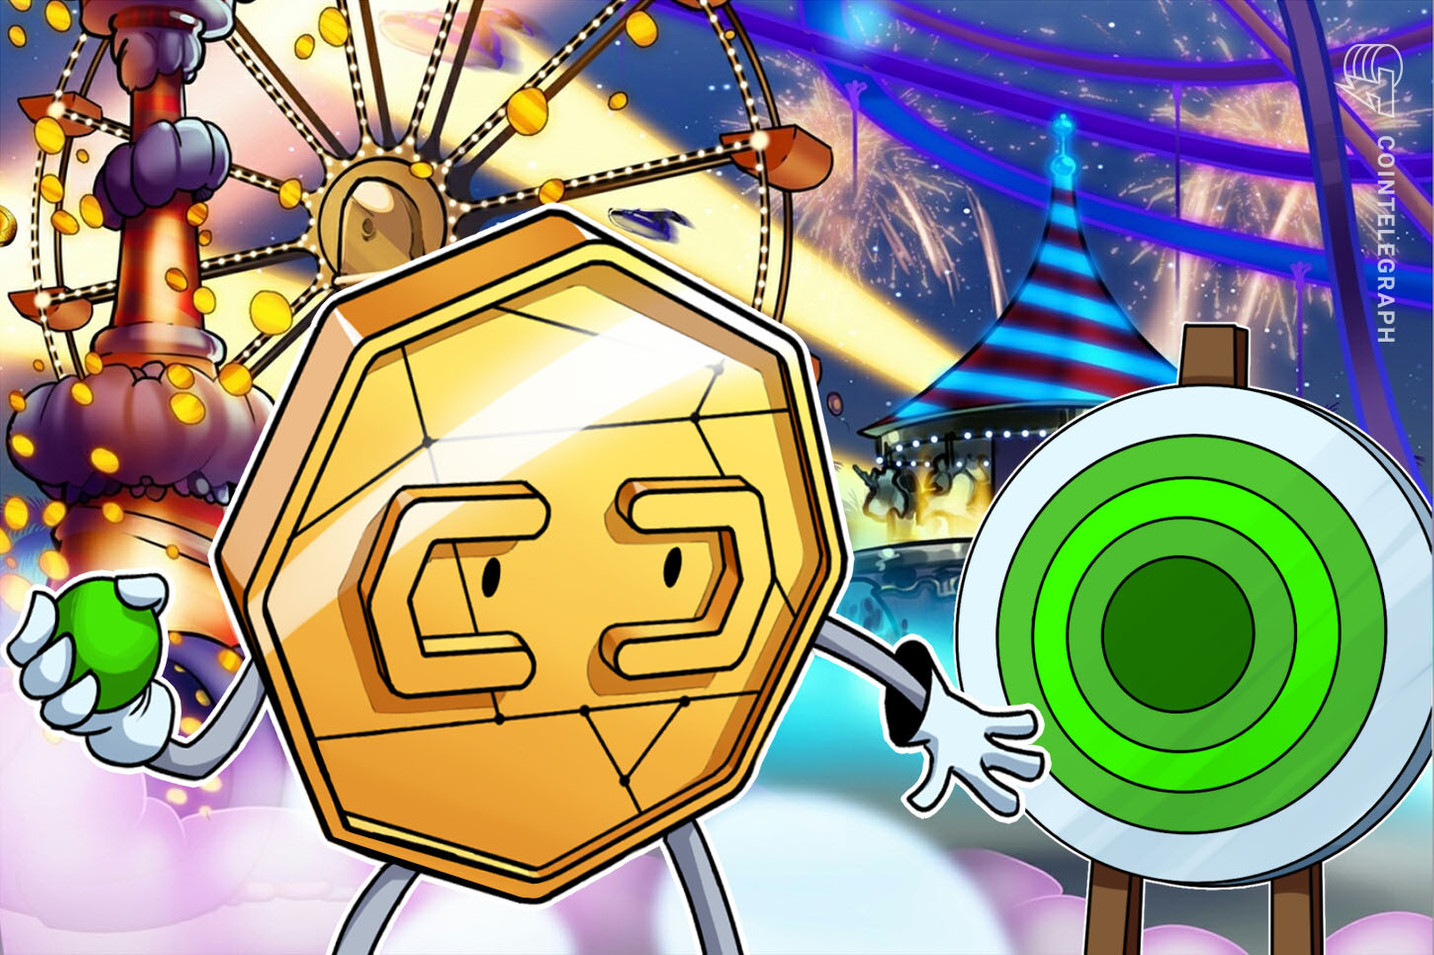 Bitcoin Price Wobbles Toward $10K as Altcoins Push Dominance Under 70%